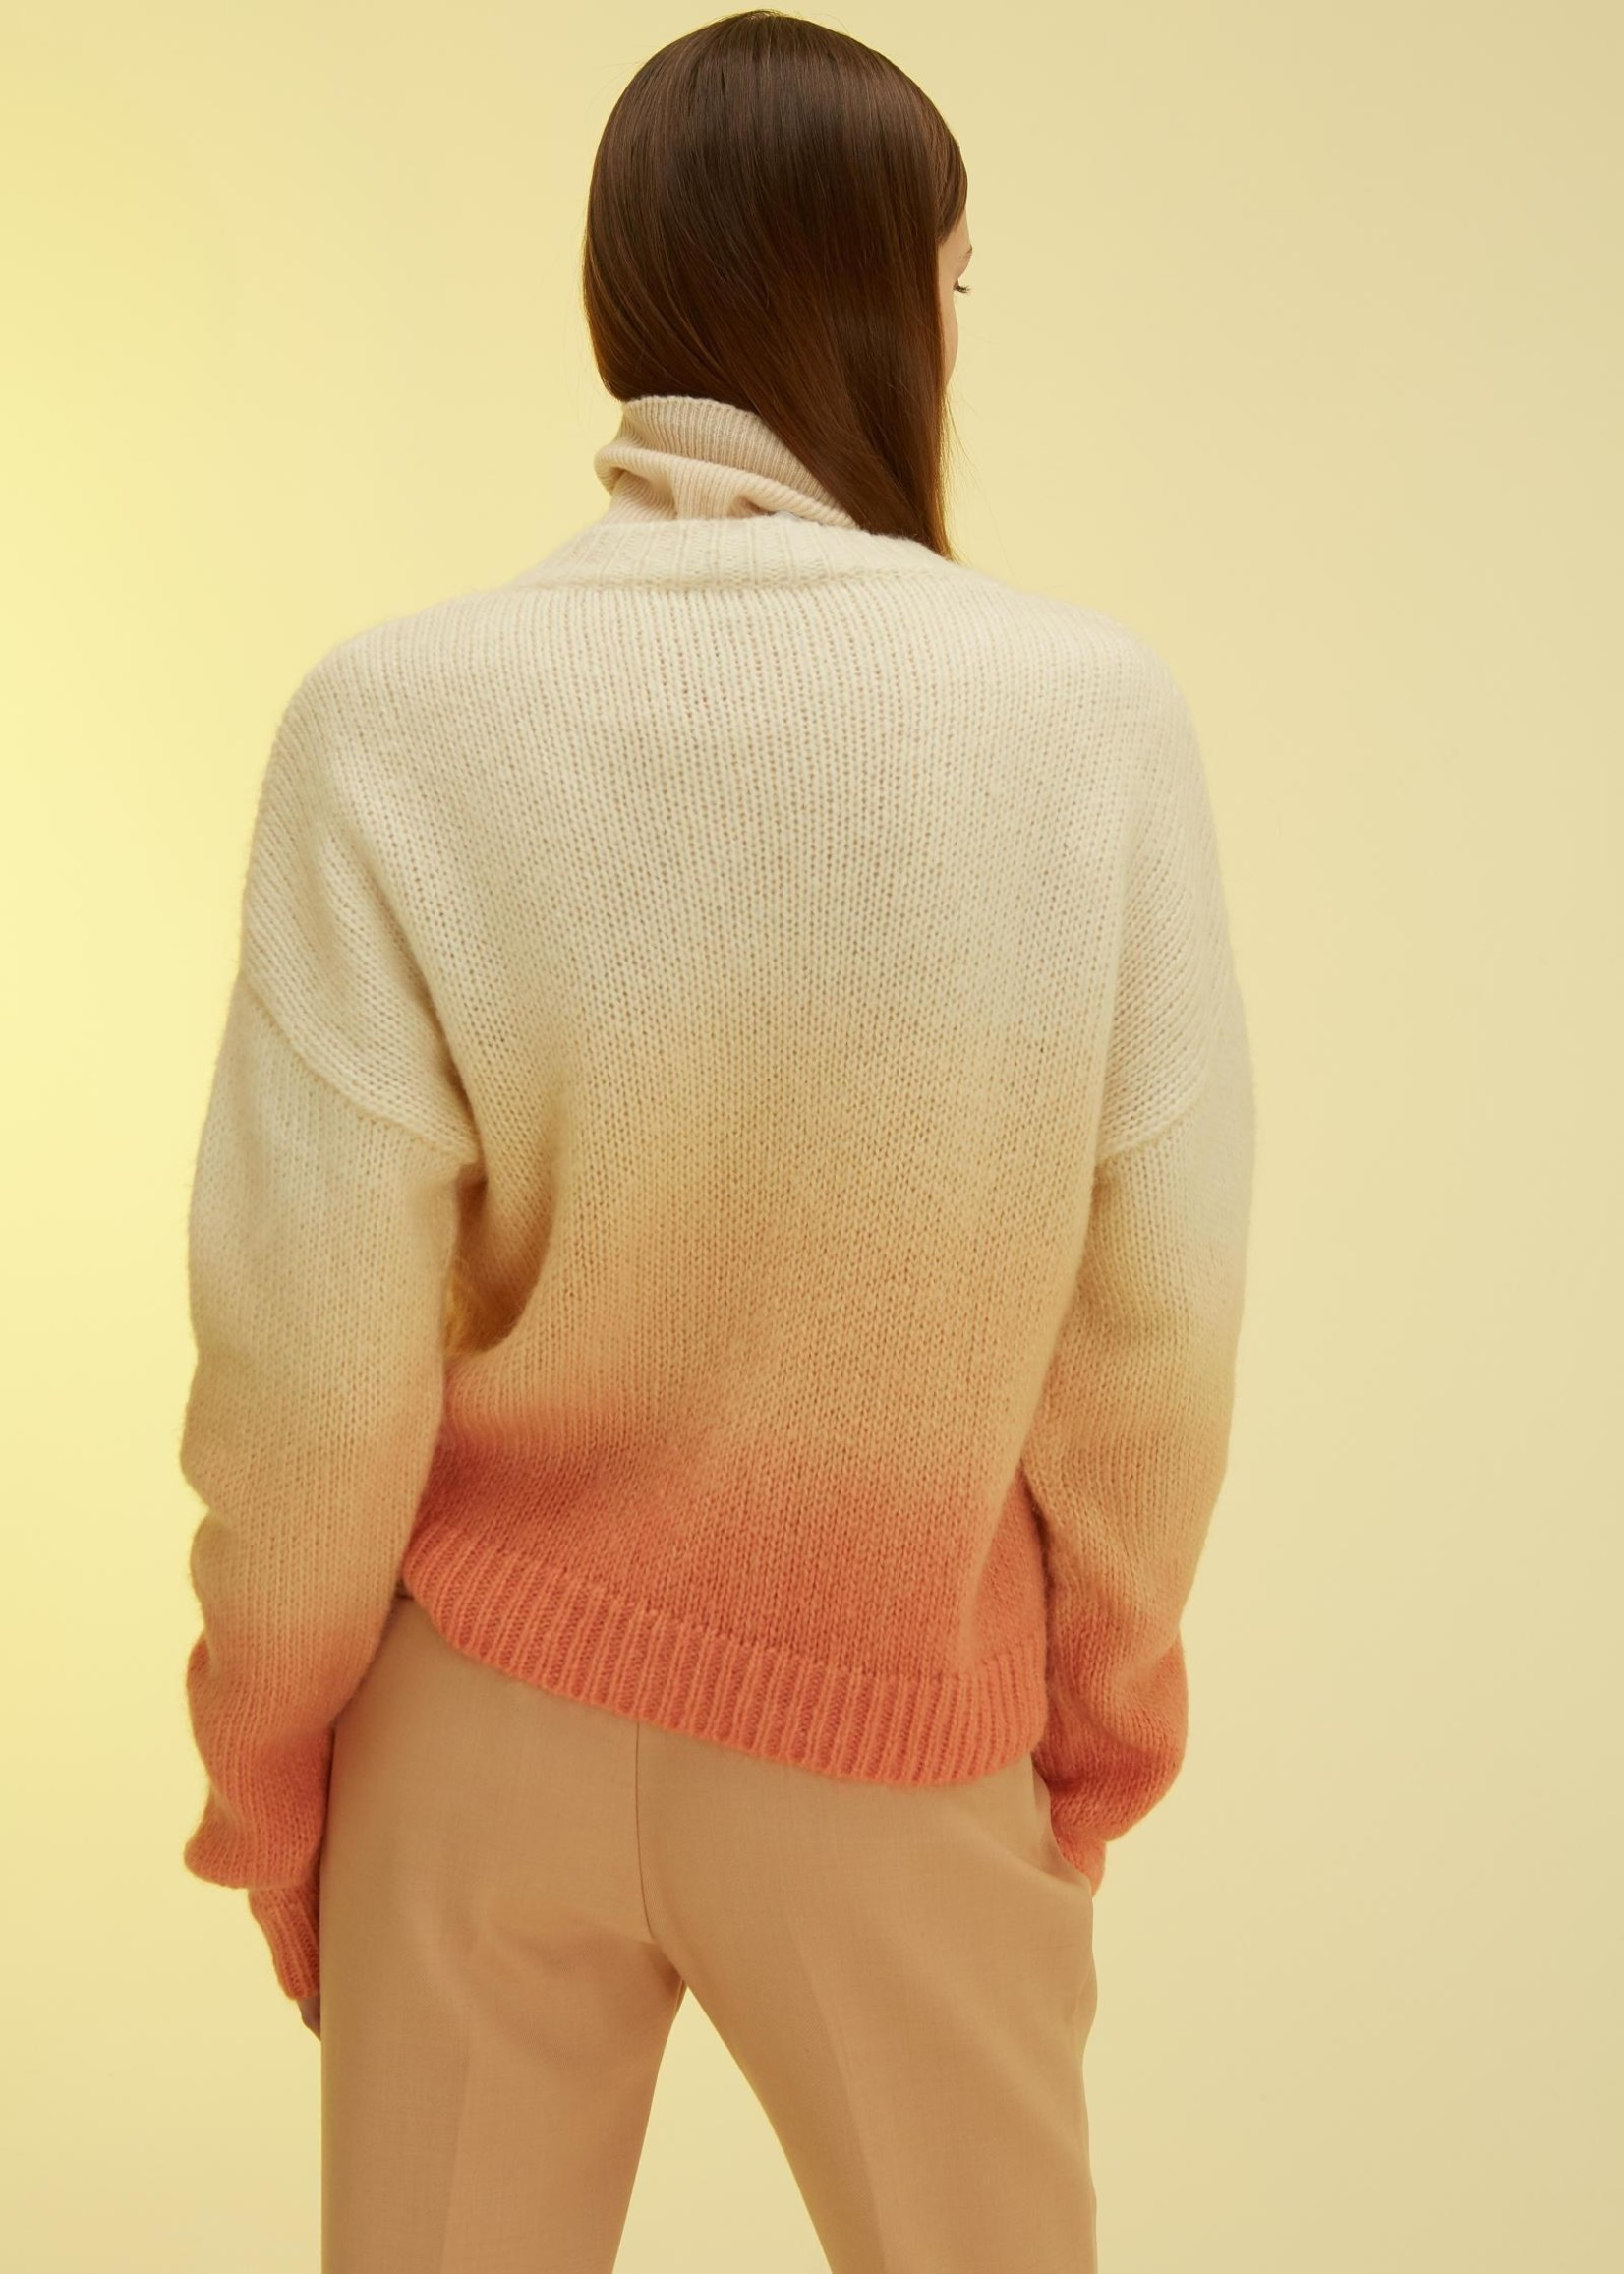 Isabelle Blanche Isabelle Blanche - Knitwear